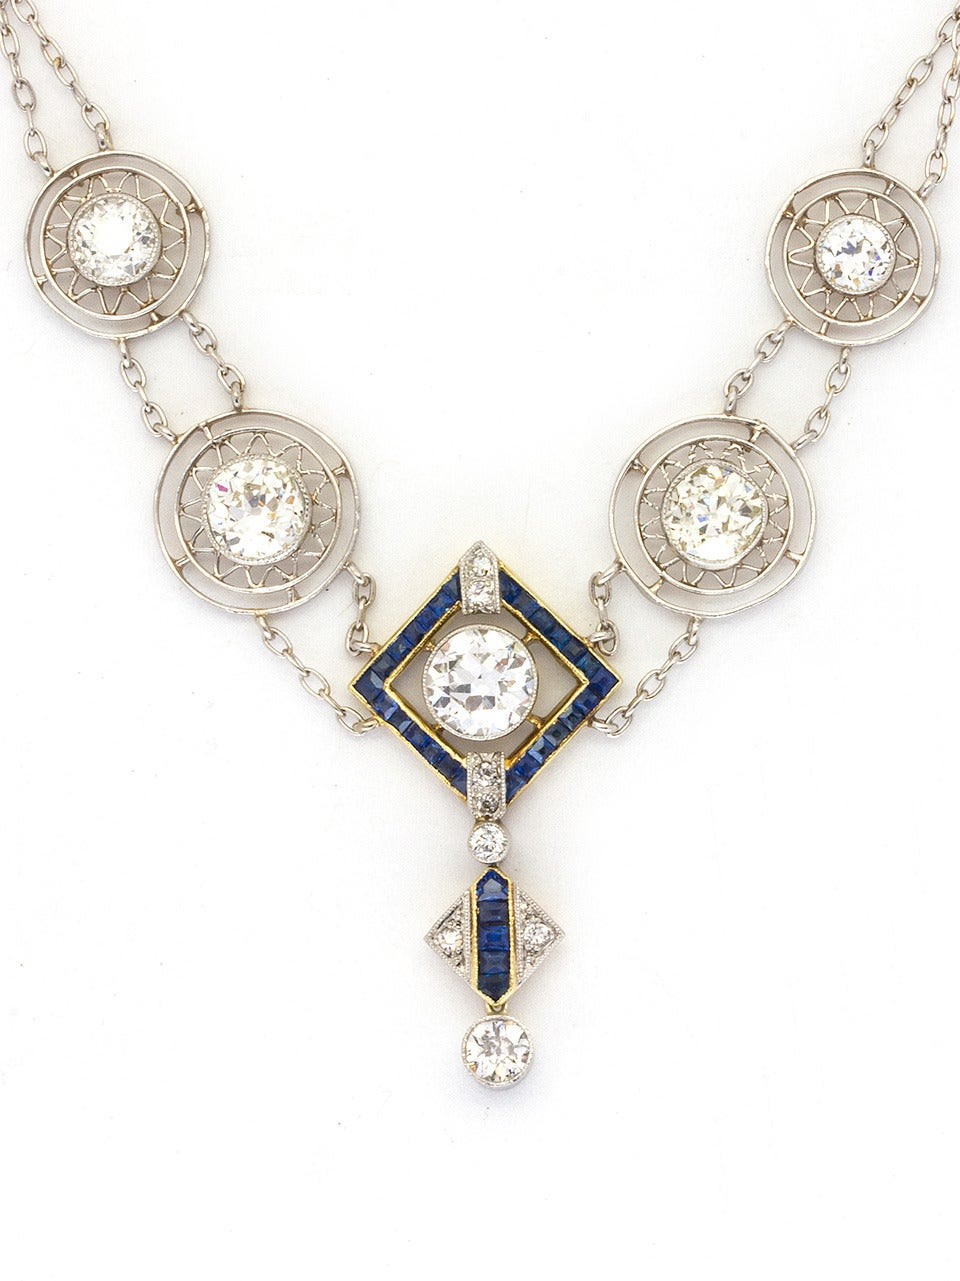 Absolutely stunning Art Deco Diamond necklace made of platinum over 18K yellow gold with over 3.50cts old European cut bezel set diamonds,VS1-VS2/G-H, in sunburst pattern plaques. Center diamond and drop are accented with calibrated French cut